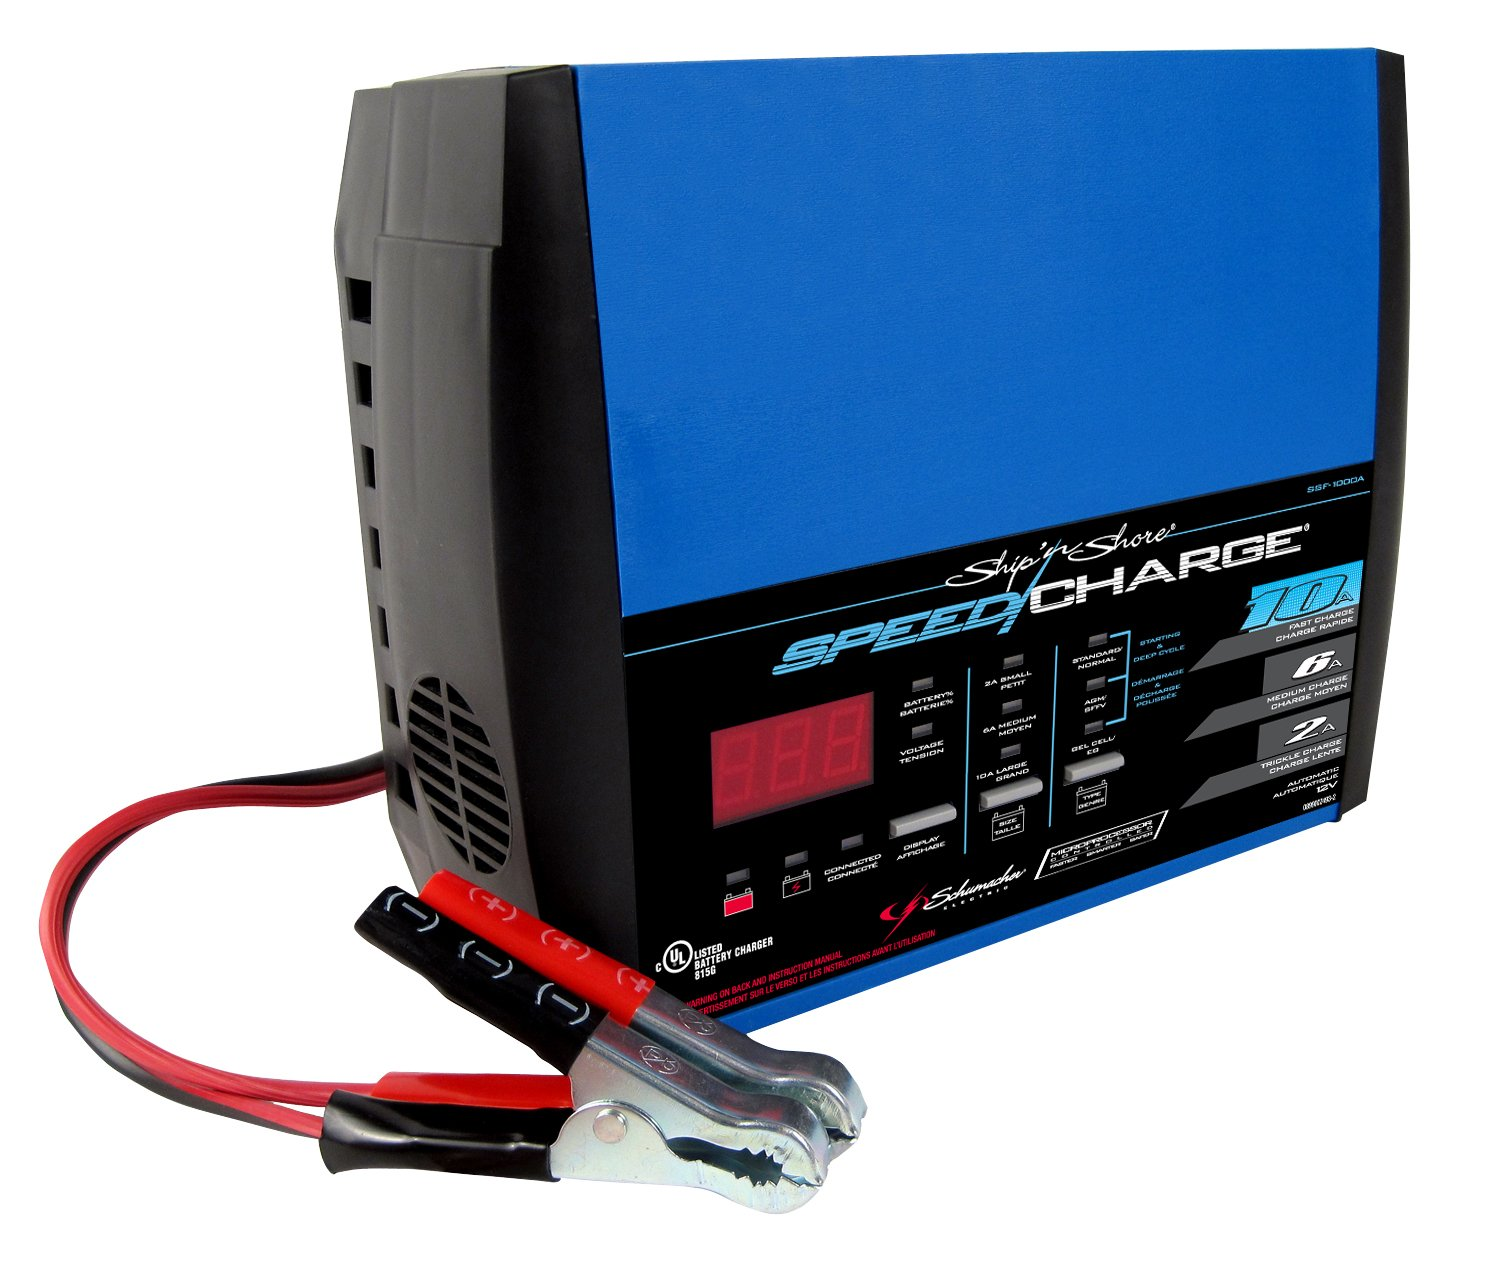 Schumacher SSF-1000A 2/6/10A 12V Automatic SpeedCharge Battery Charger